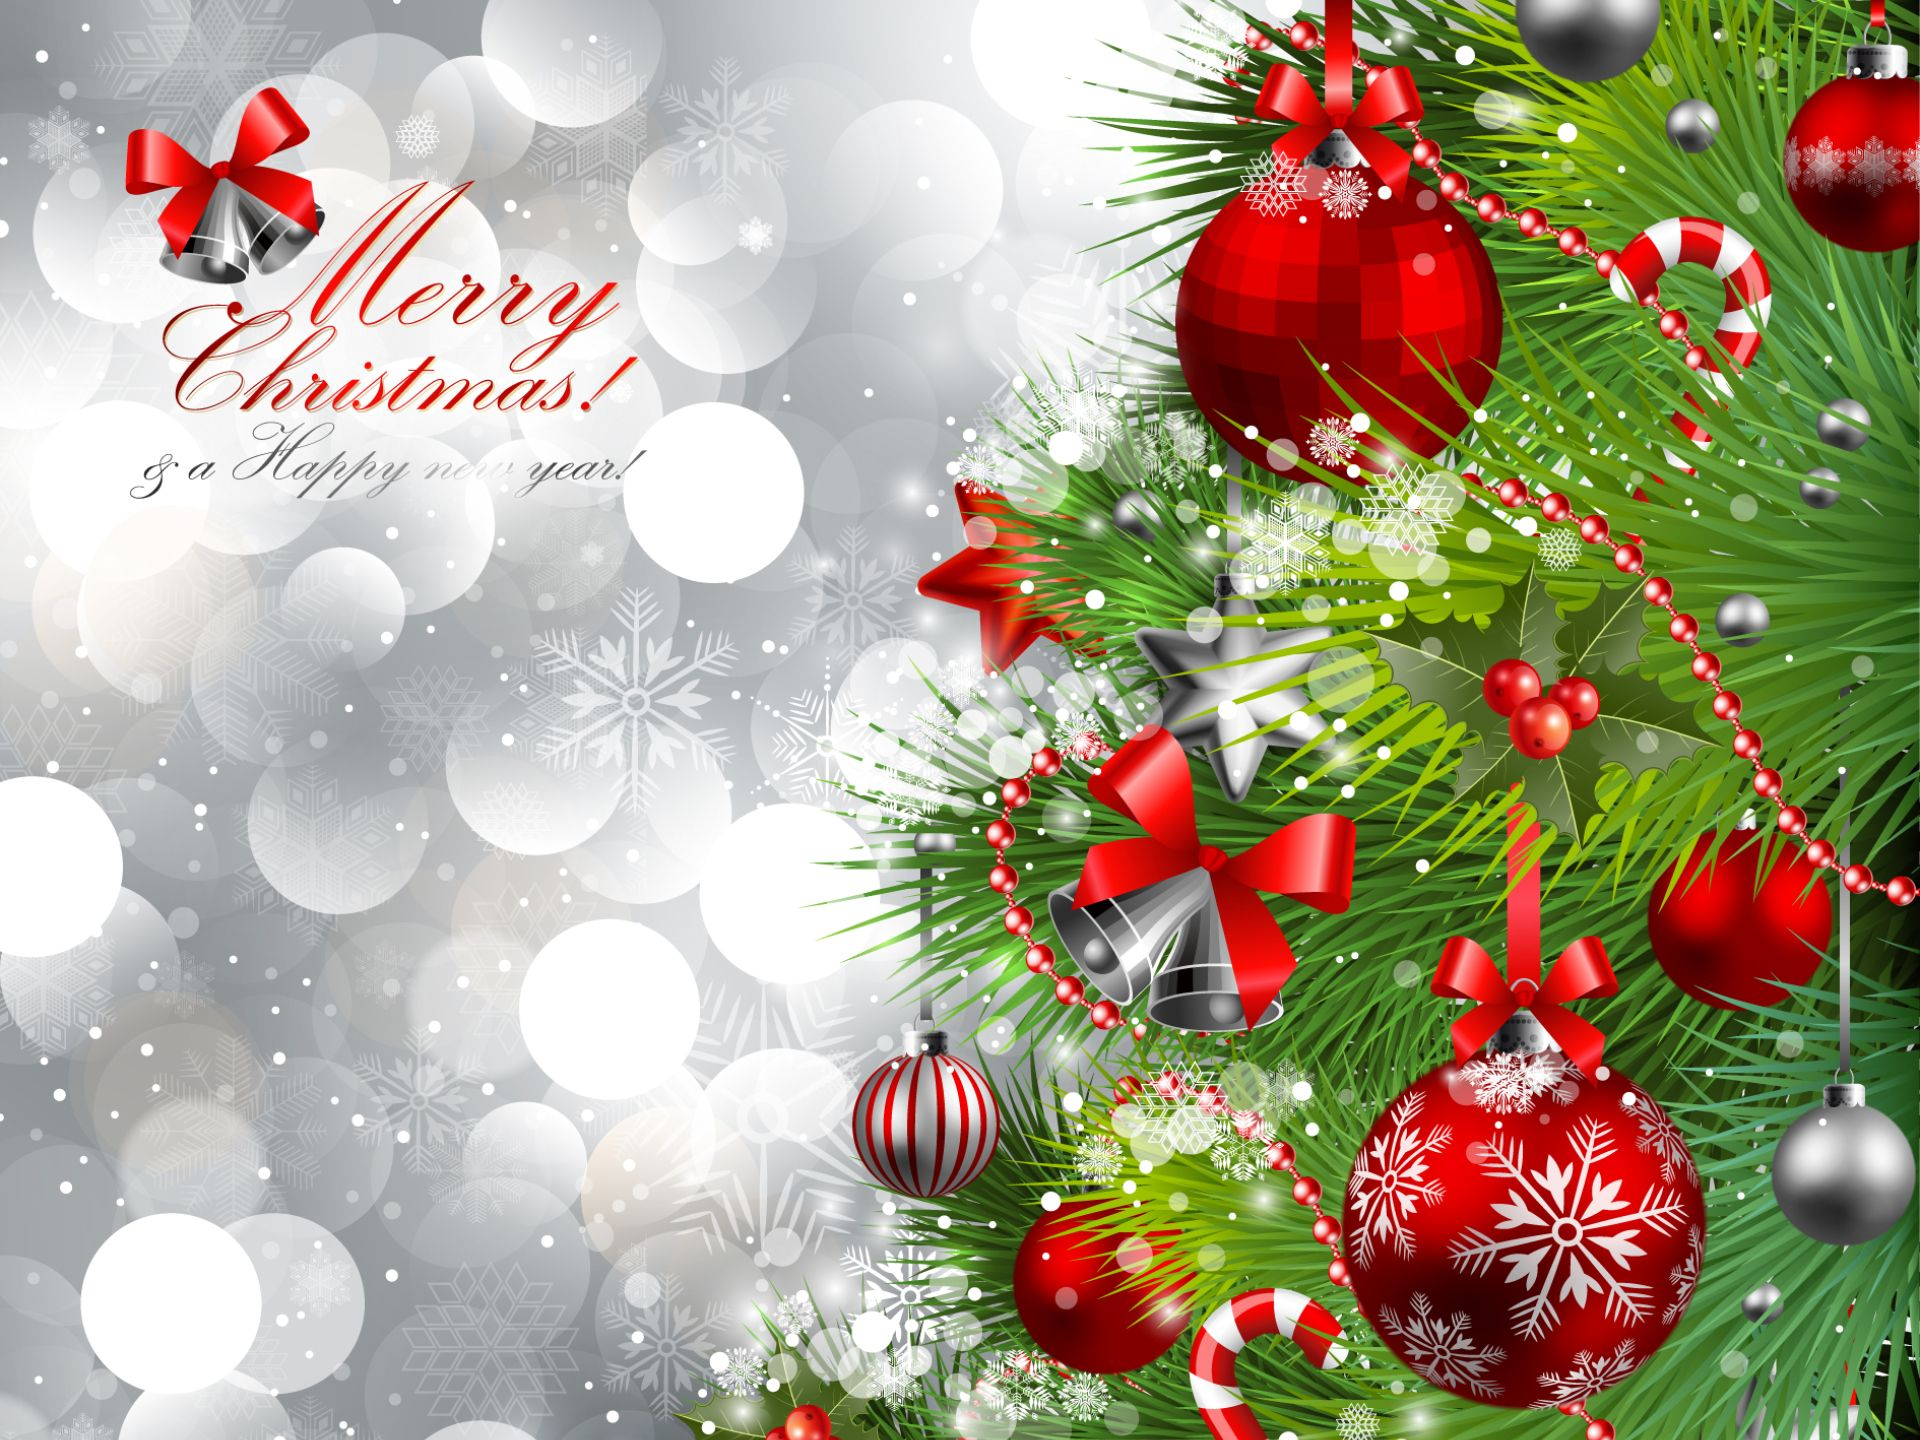 Merry christmas 2014 quotes for greetings cards are you excited to merry christmas 2014 quotes for greetings cards are you excited to wish your friends to this christmas description from osc vector m4hsunfo